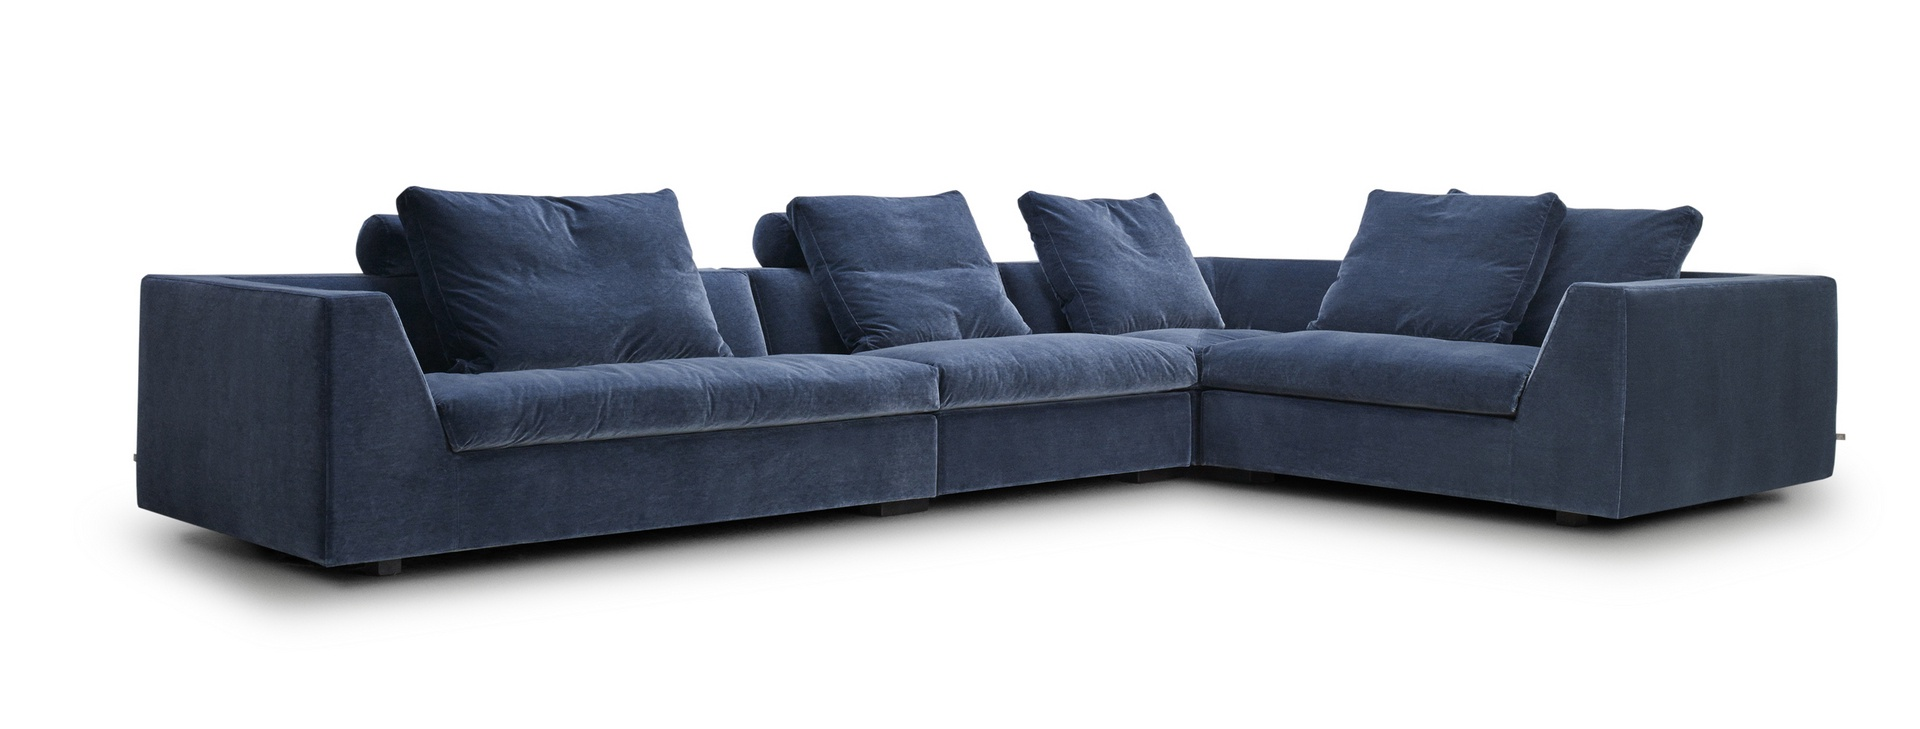 sofa 250cm what to do with old cushions eilersen chess 370 x 250 cm louis 14 modular